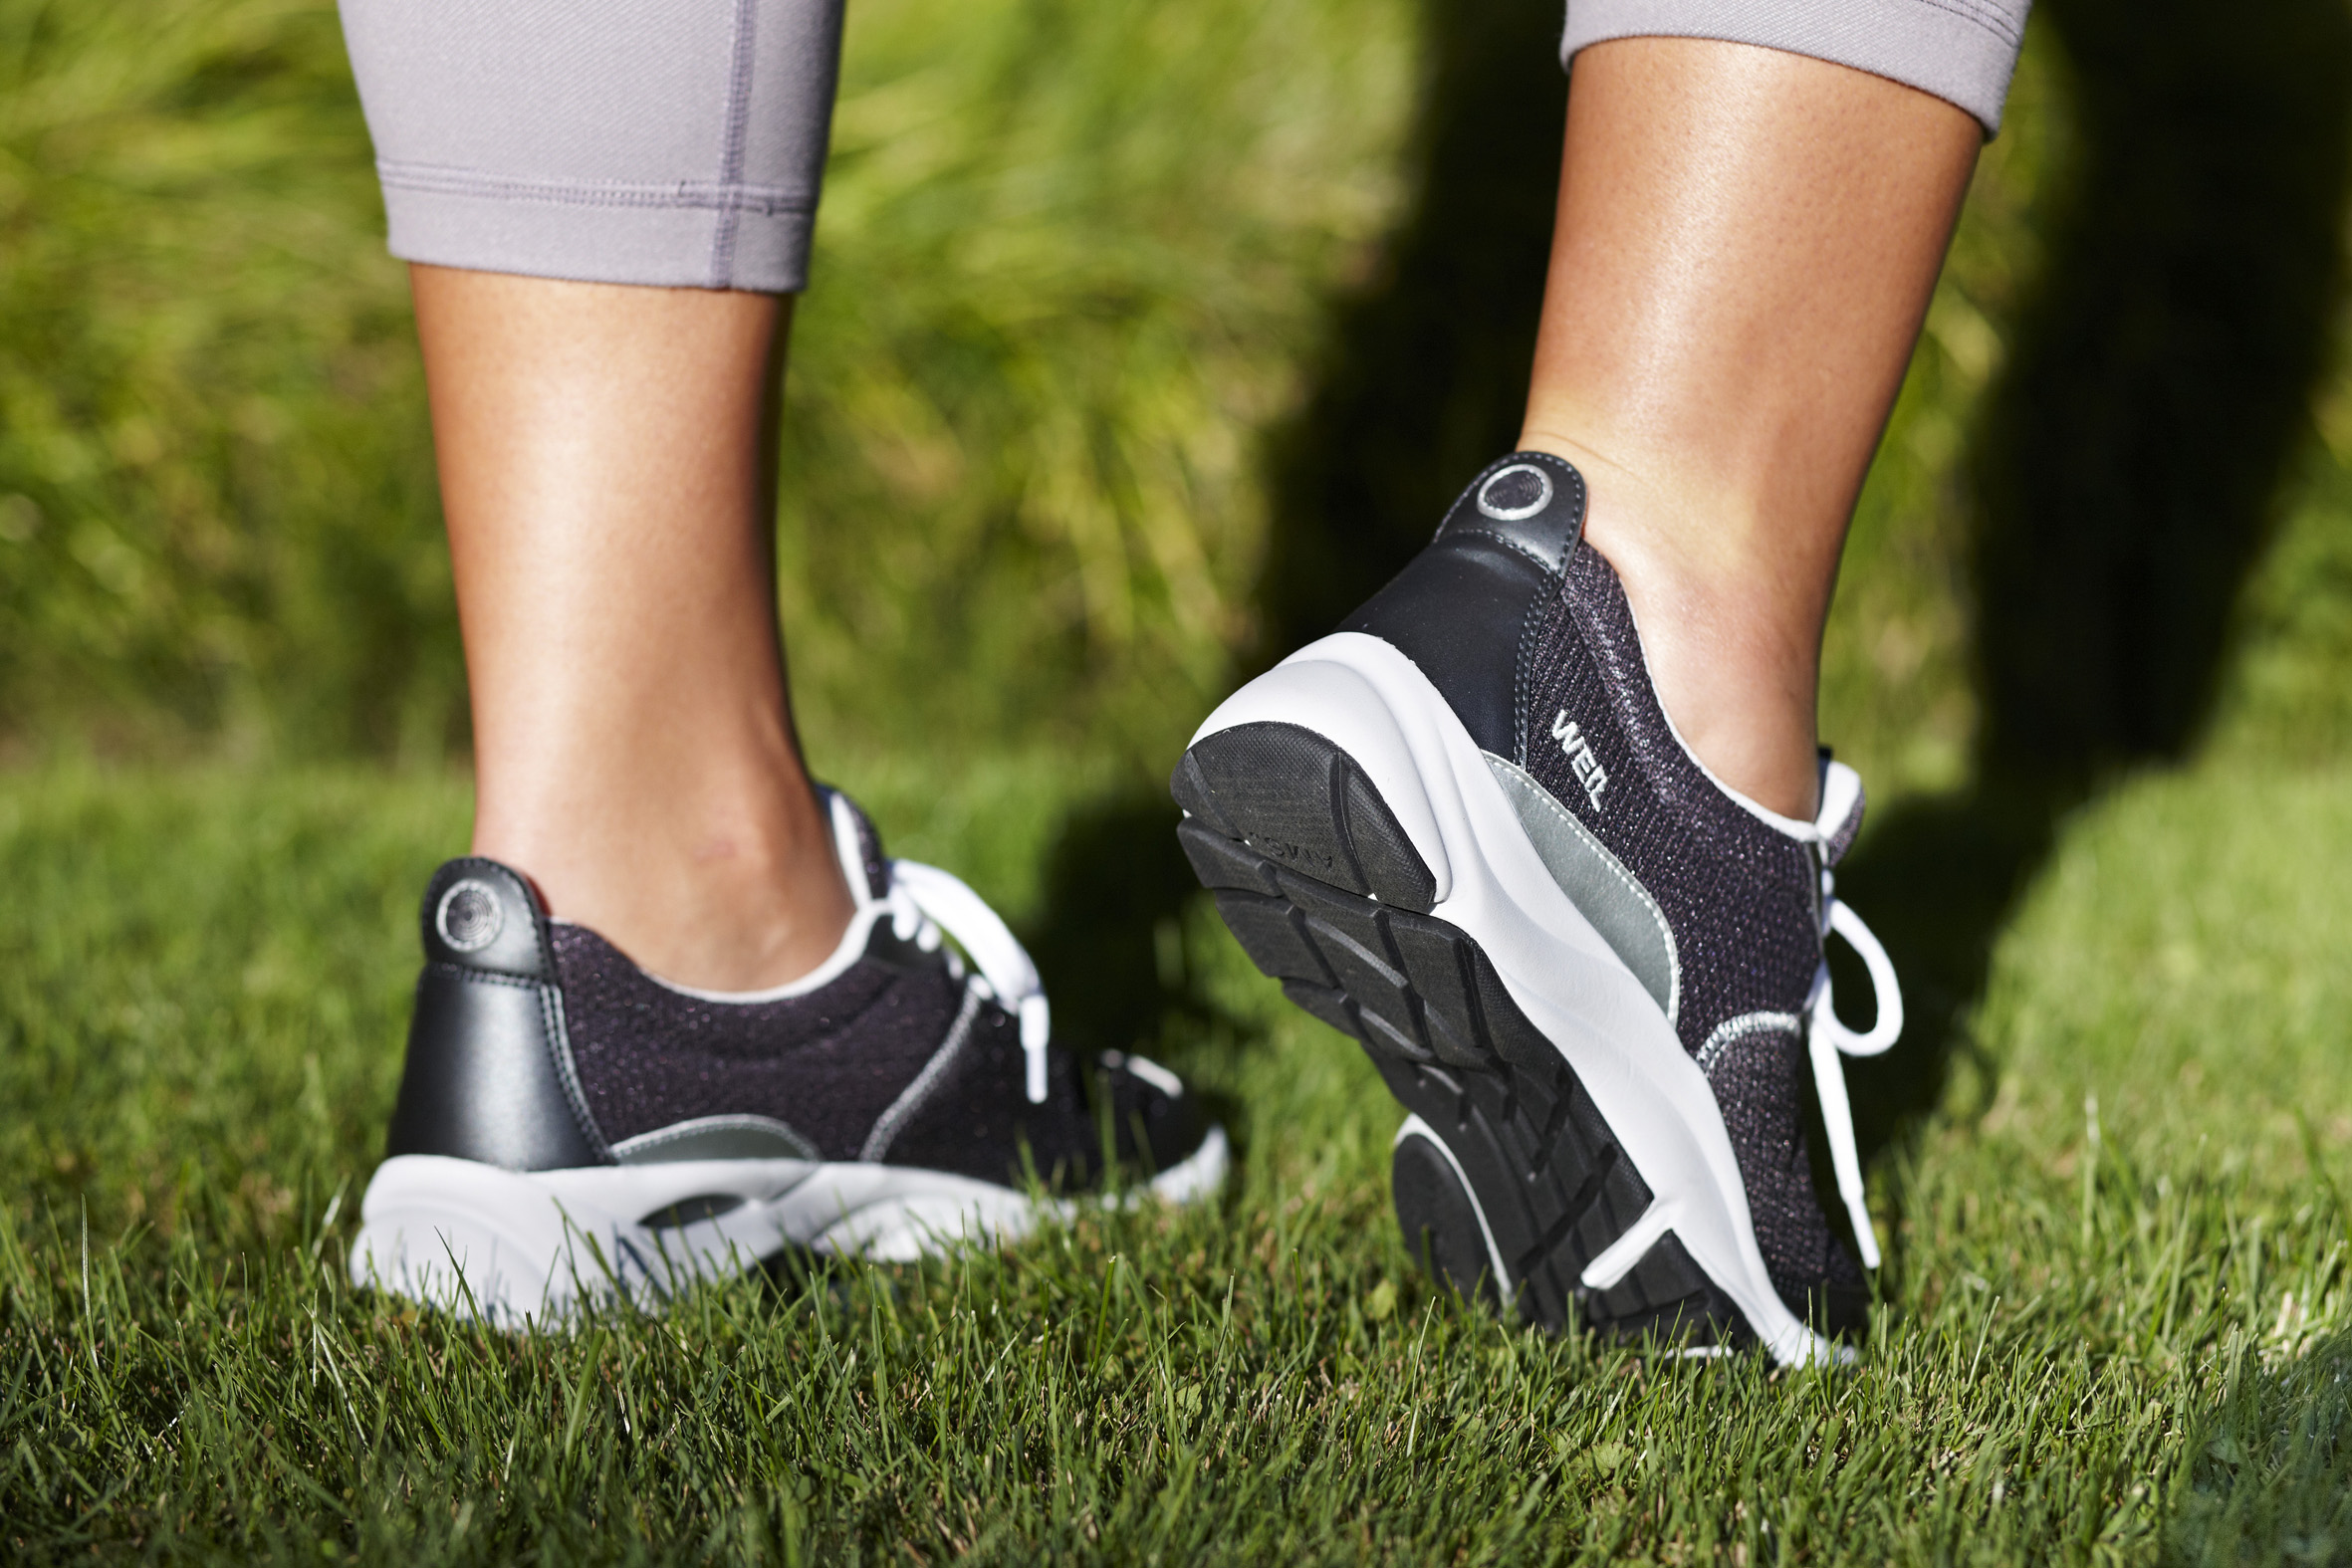 Let Chiropractic Get You Walking Better, It's a Beautiful ...